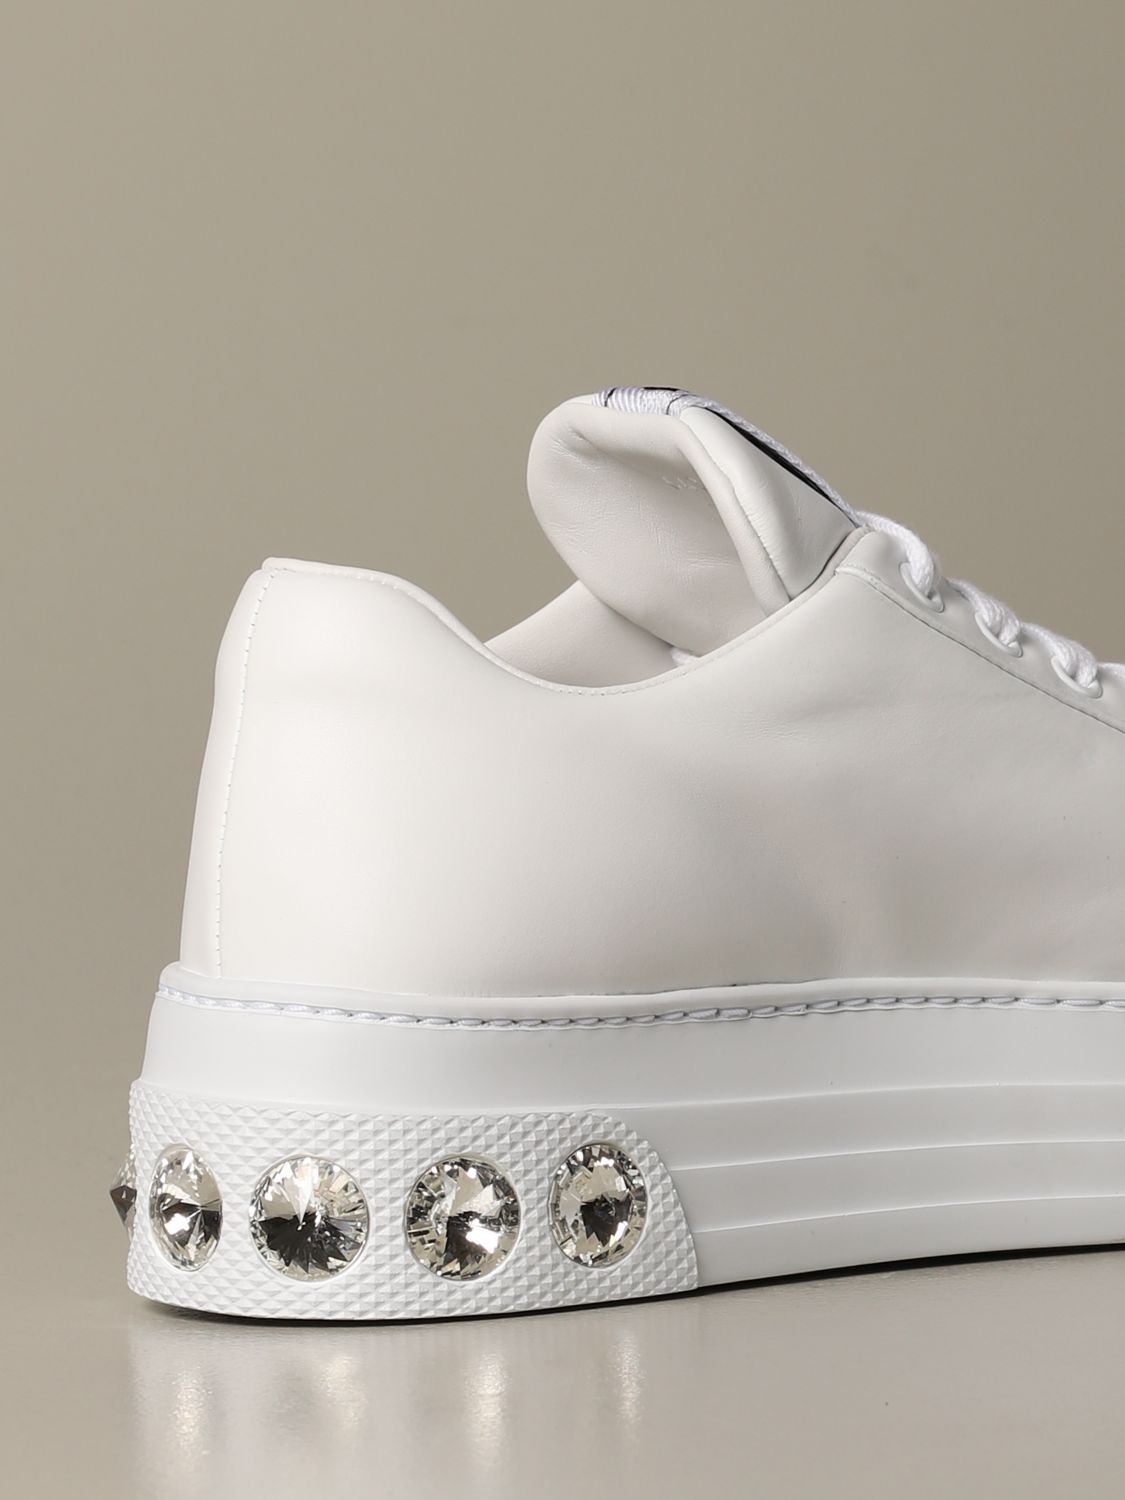 Sneakers pelle suola strass bianco 3